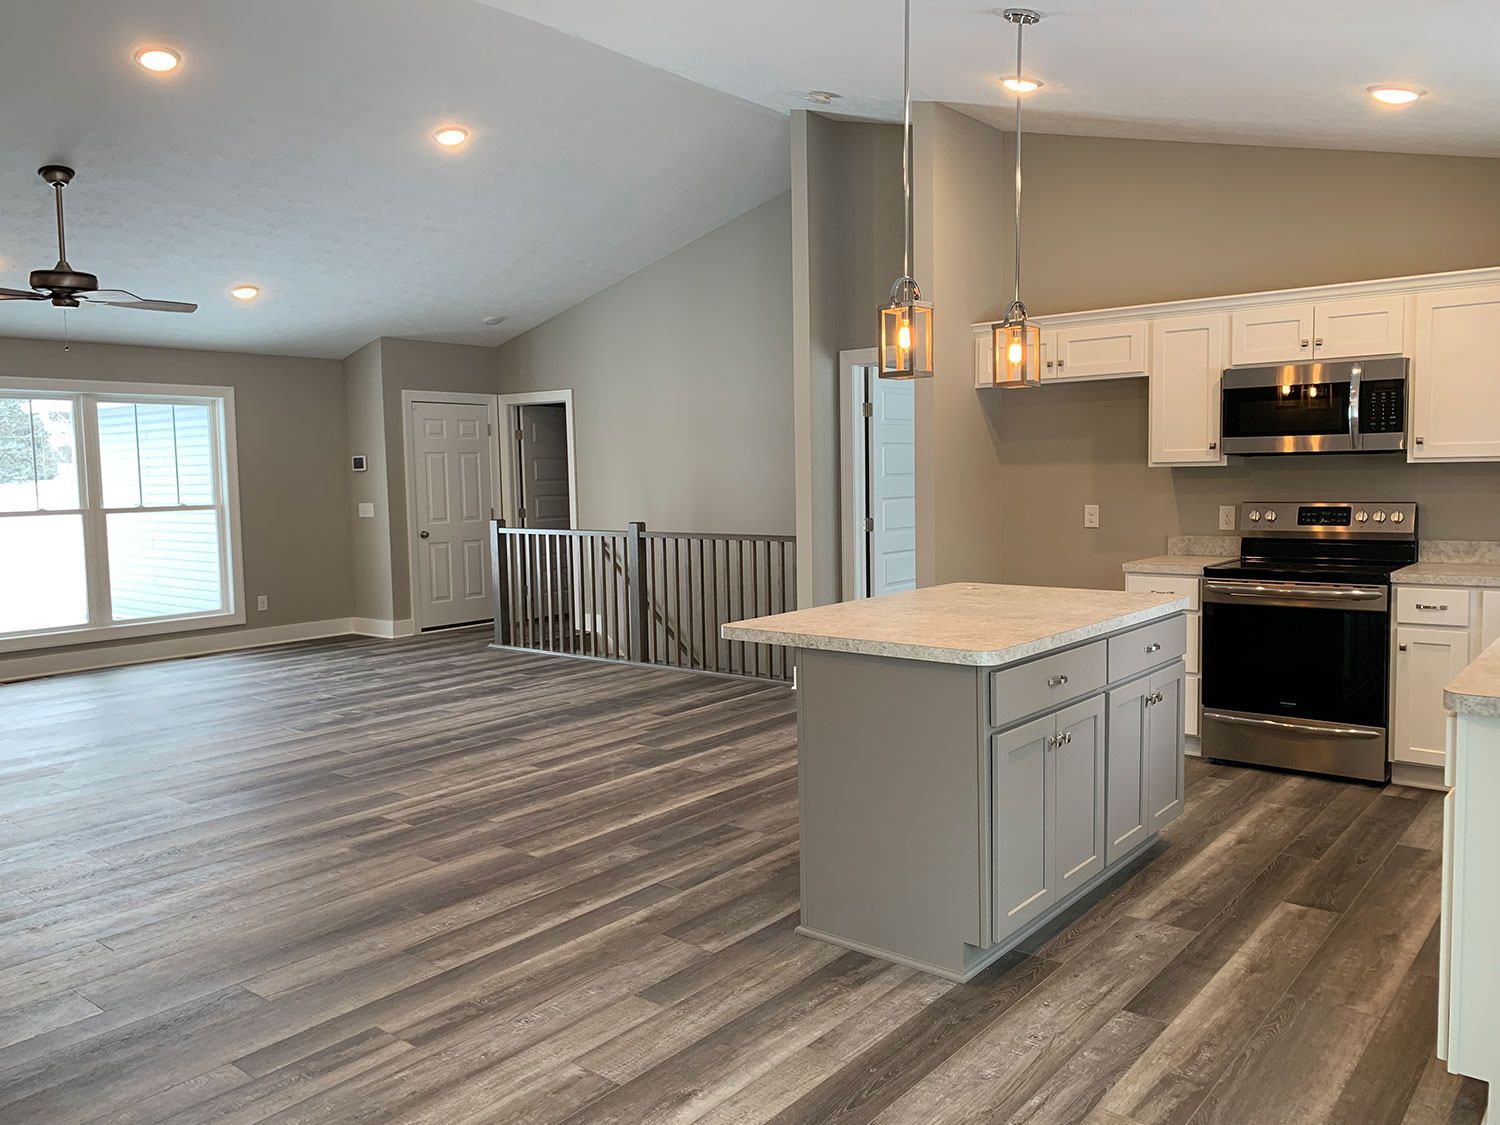 Capstone Custom Homes - Melrose Drive, Wooster Ohio